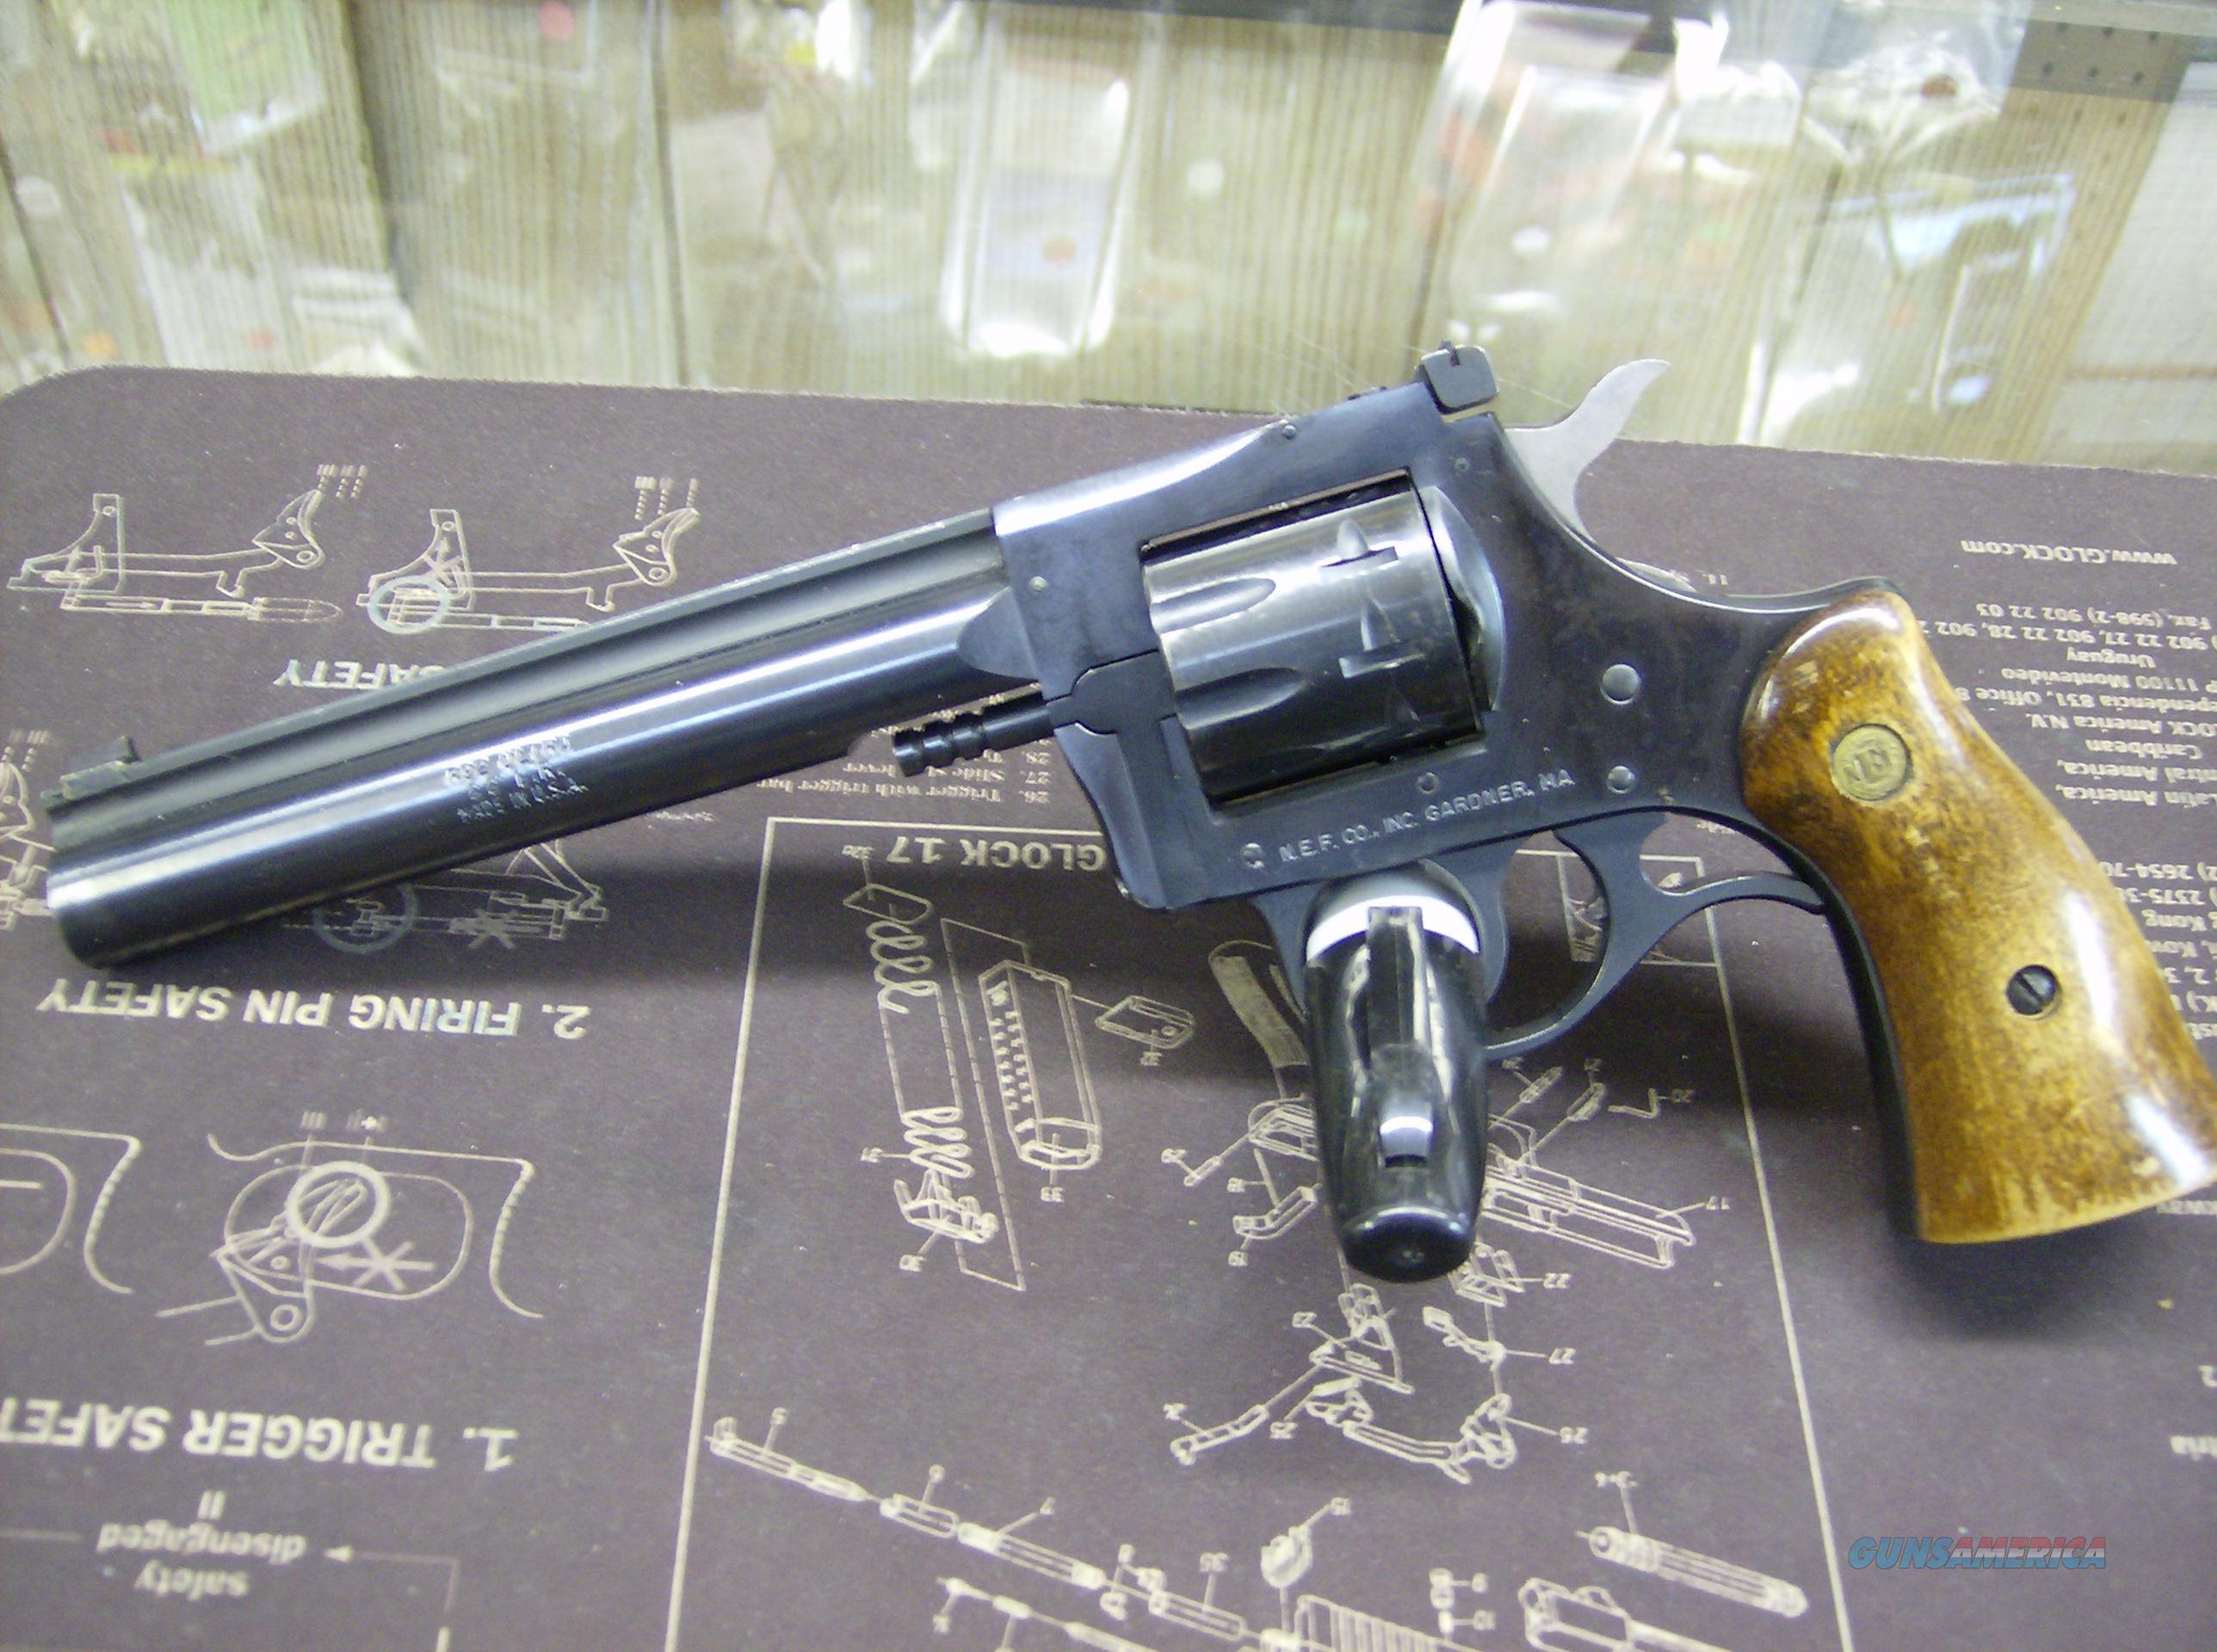 NEW ENGLAND FIREAMS R92 ULTRA 22LR REVOLVER  Guns > Pistols > Harrington & Richardson Pistols